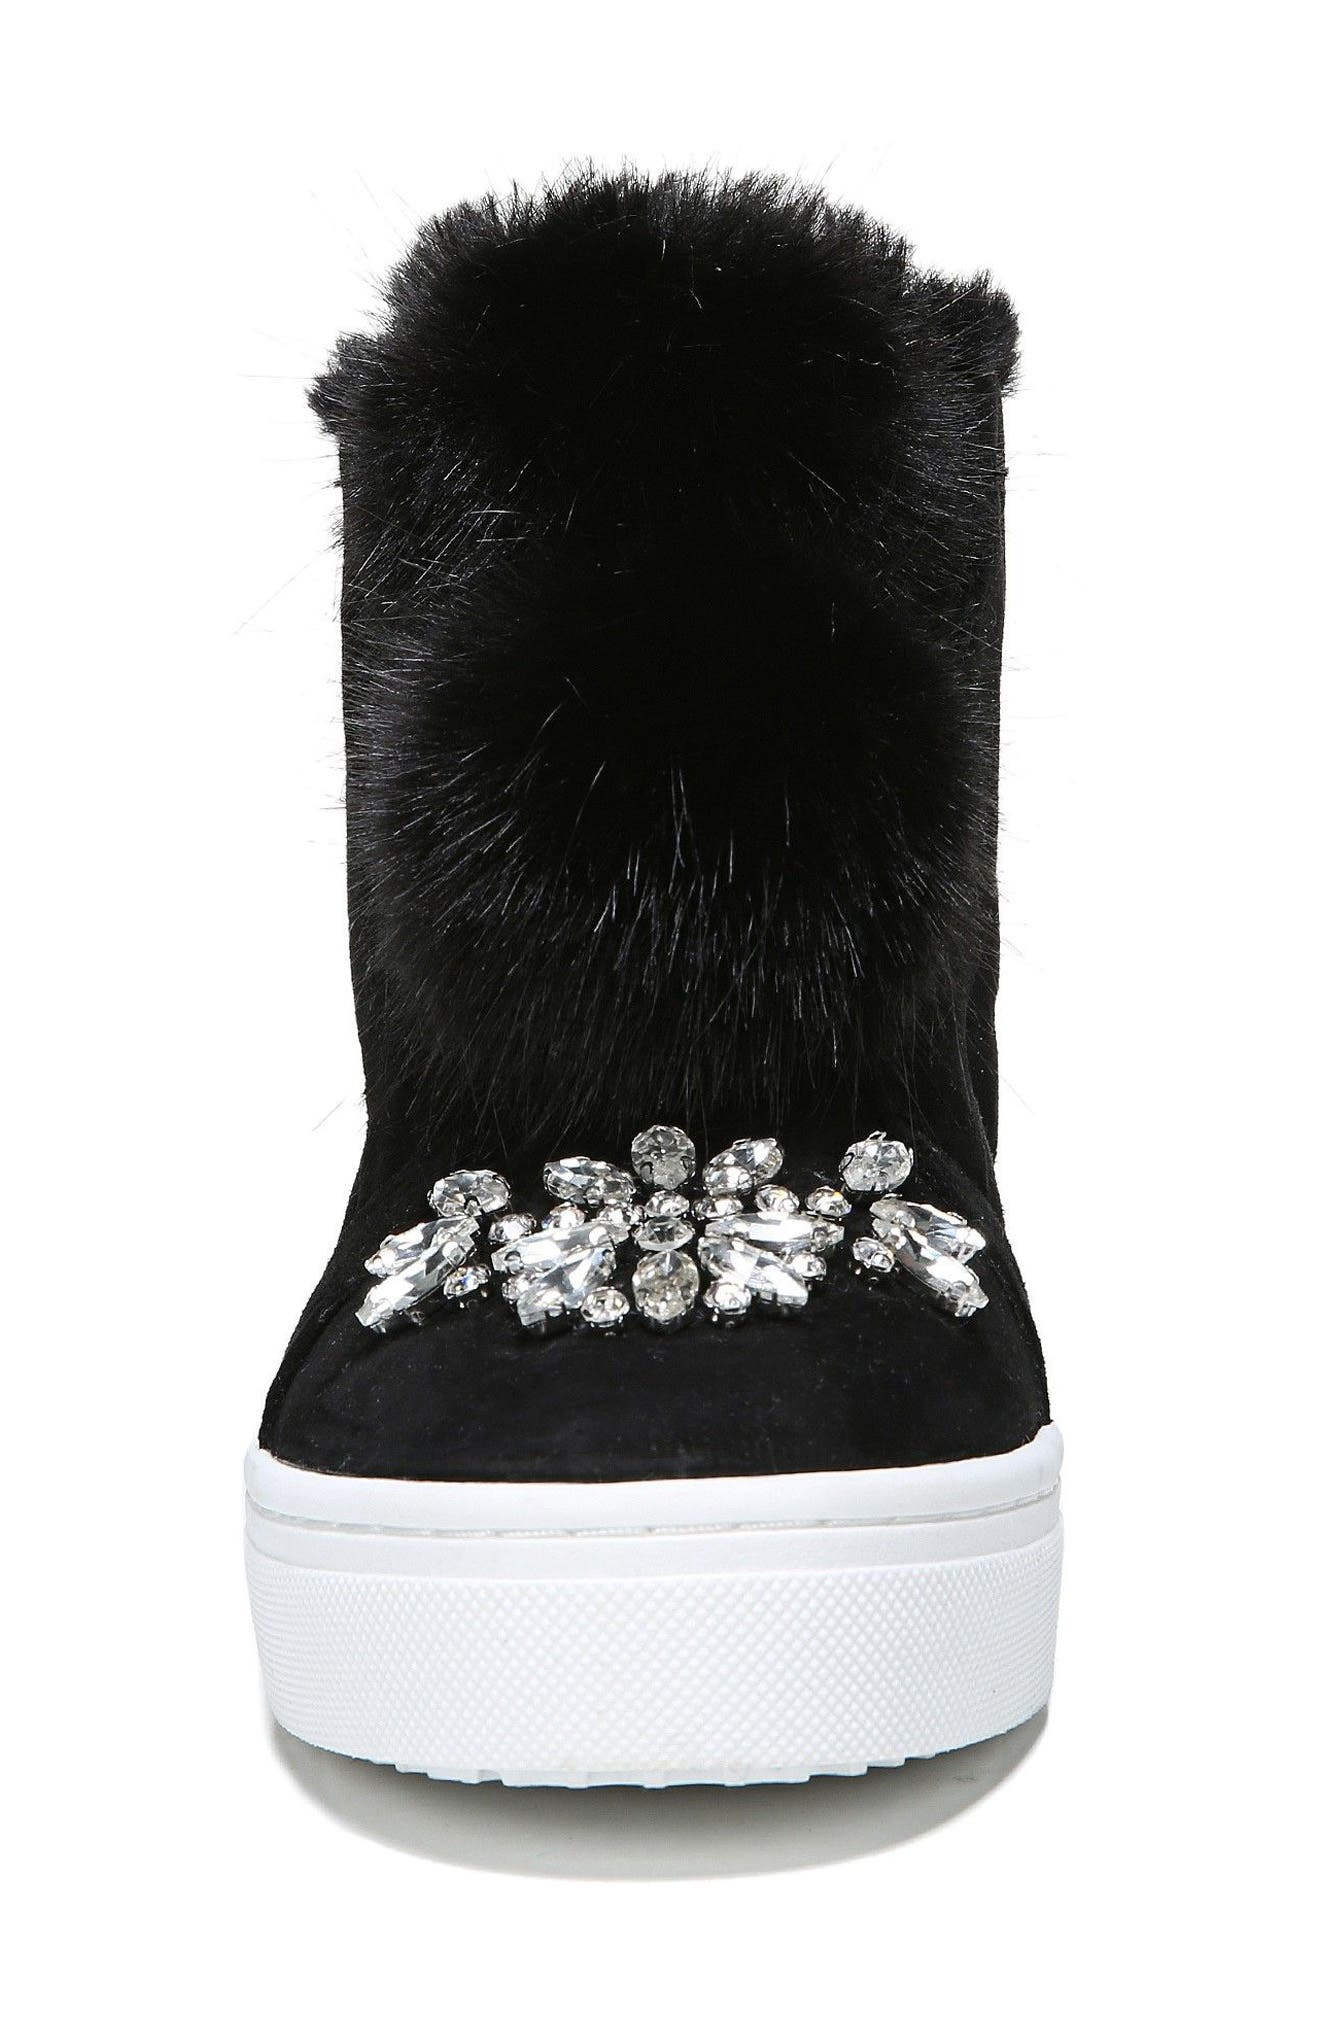 Leland Faux Fur Sneaker,                             Alternate thumbnail 4, color,